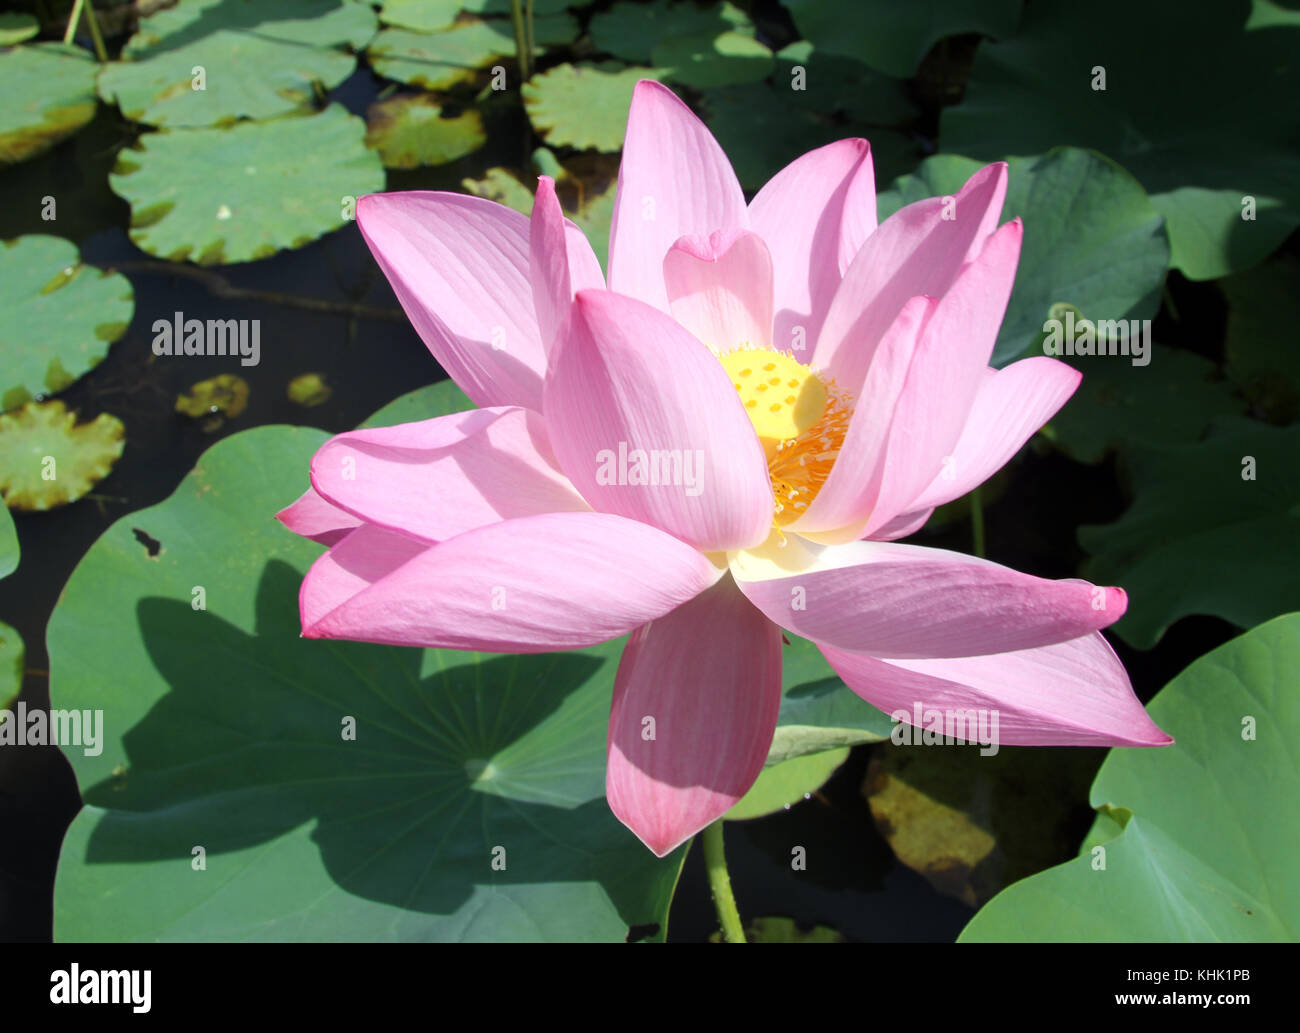 Big lotus leaf in pond stock photos big lotus leaf in pond stock big lotus flower and green leaves in pond stock image mightylinksfo